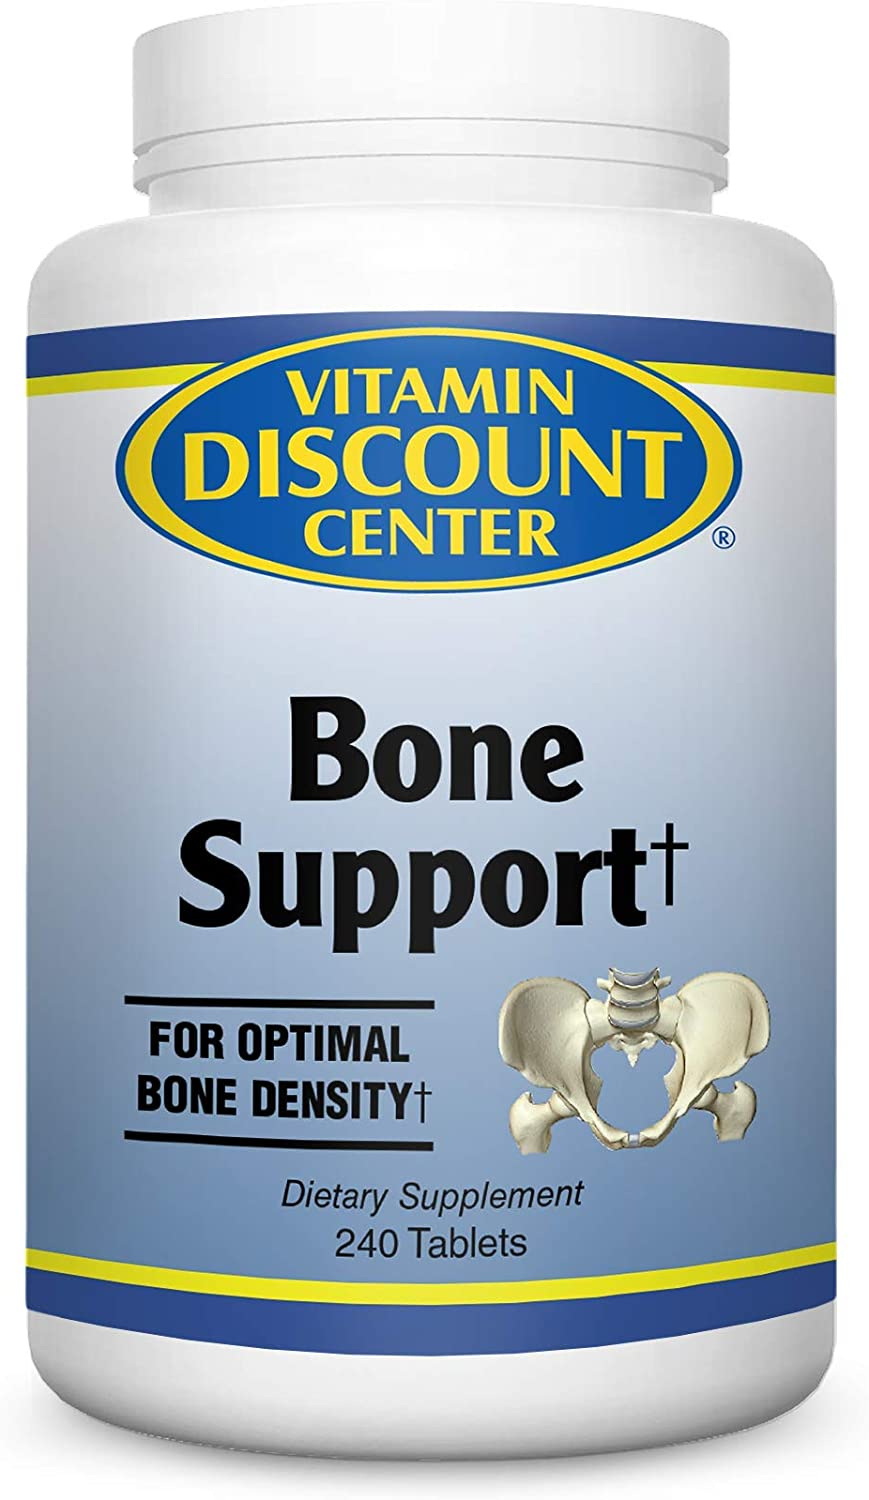 Vitamin Discount Center Bone Support Supplement, 240 Tablets